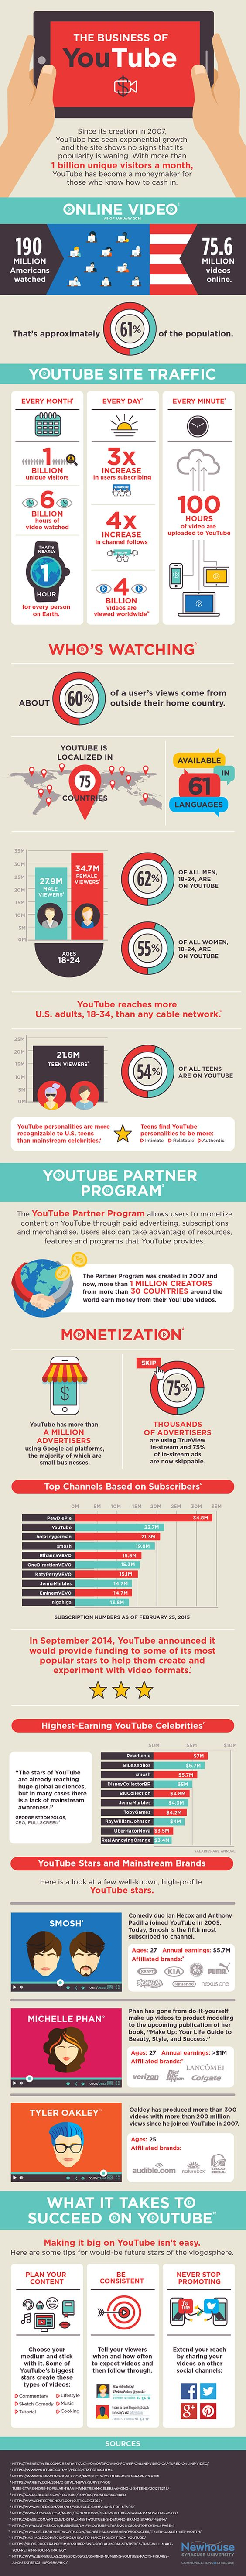 Why Youtube is better than other video platforms